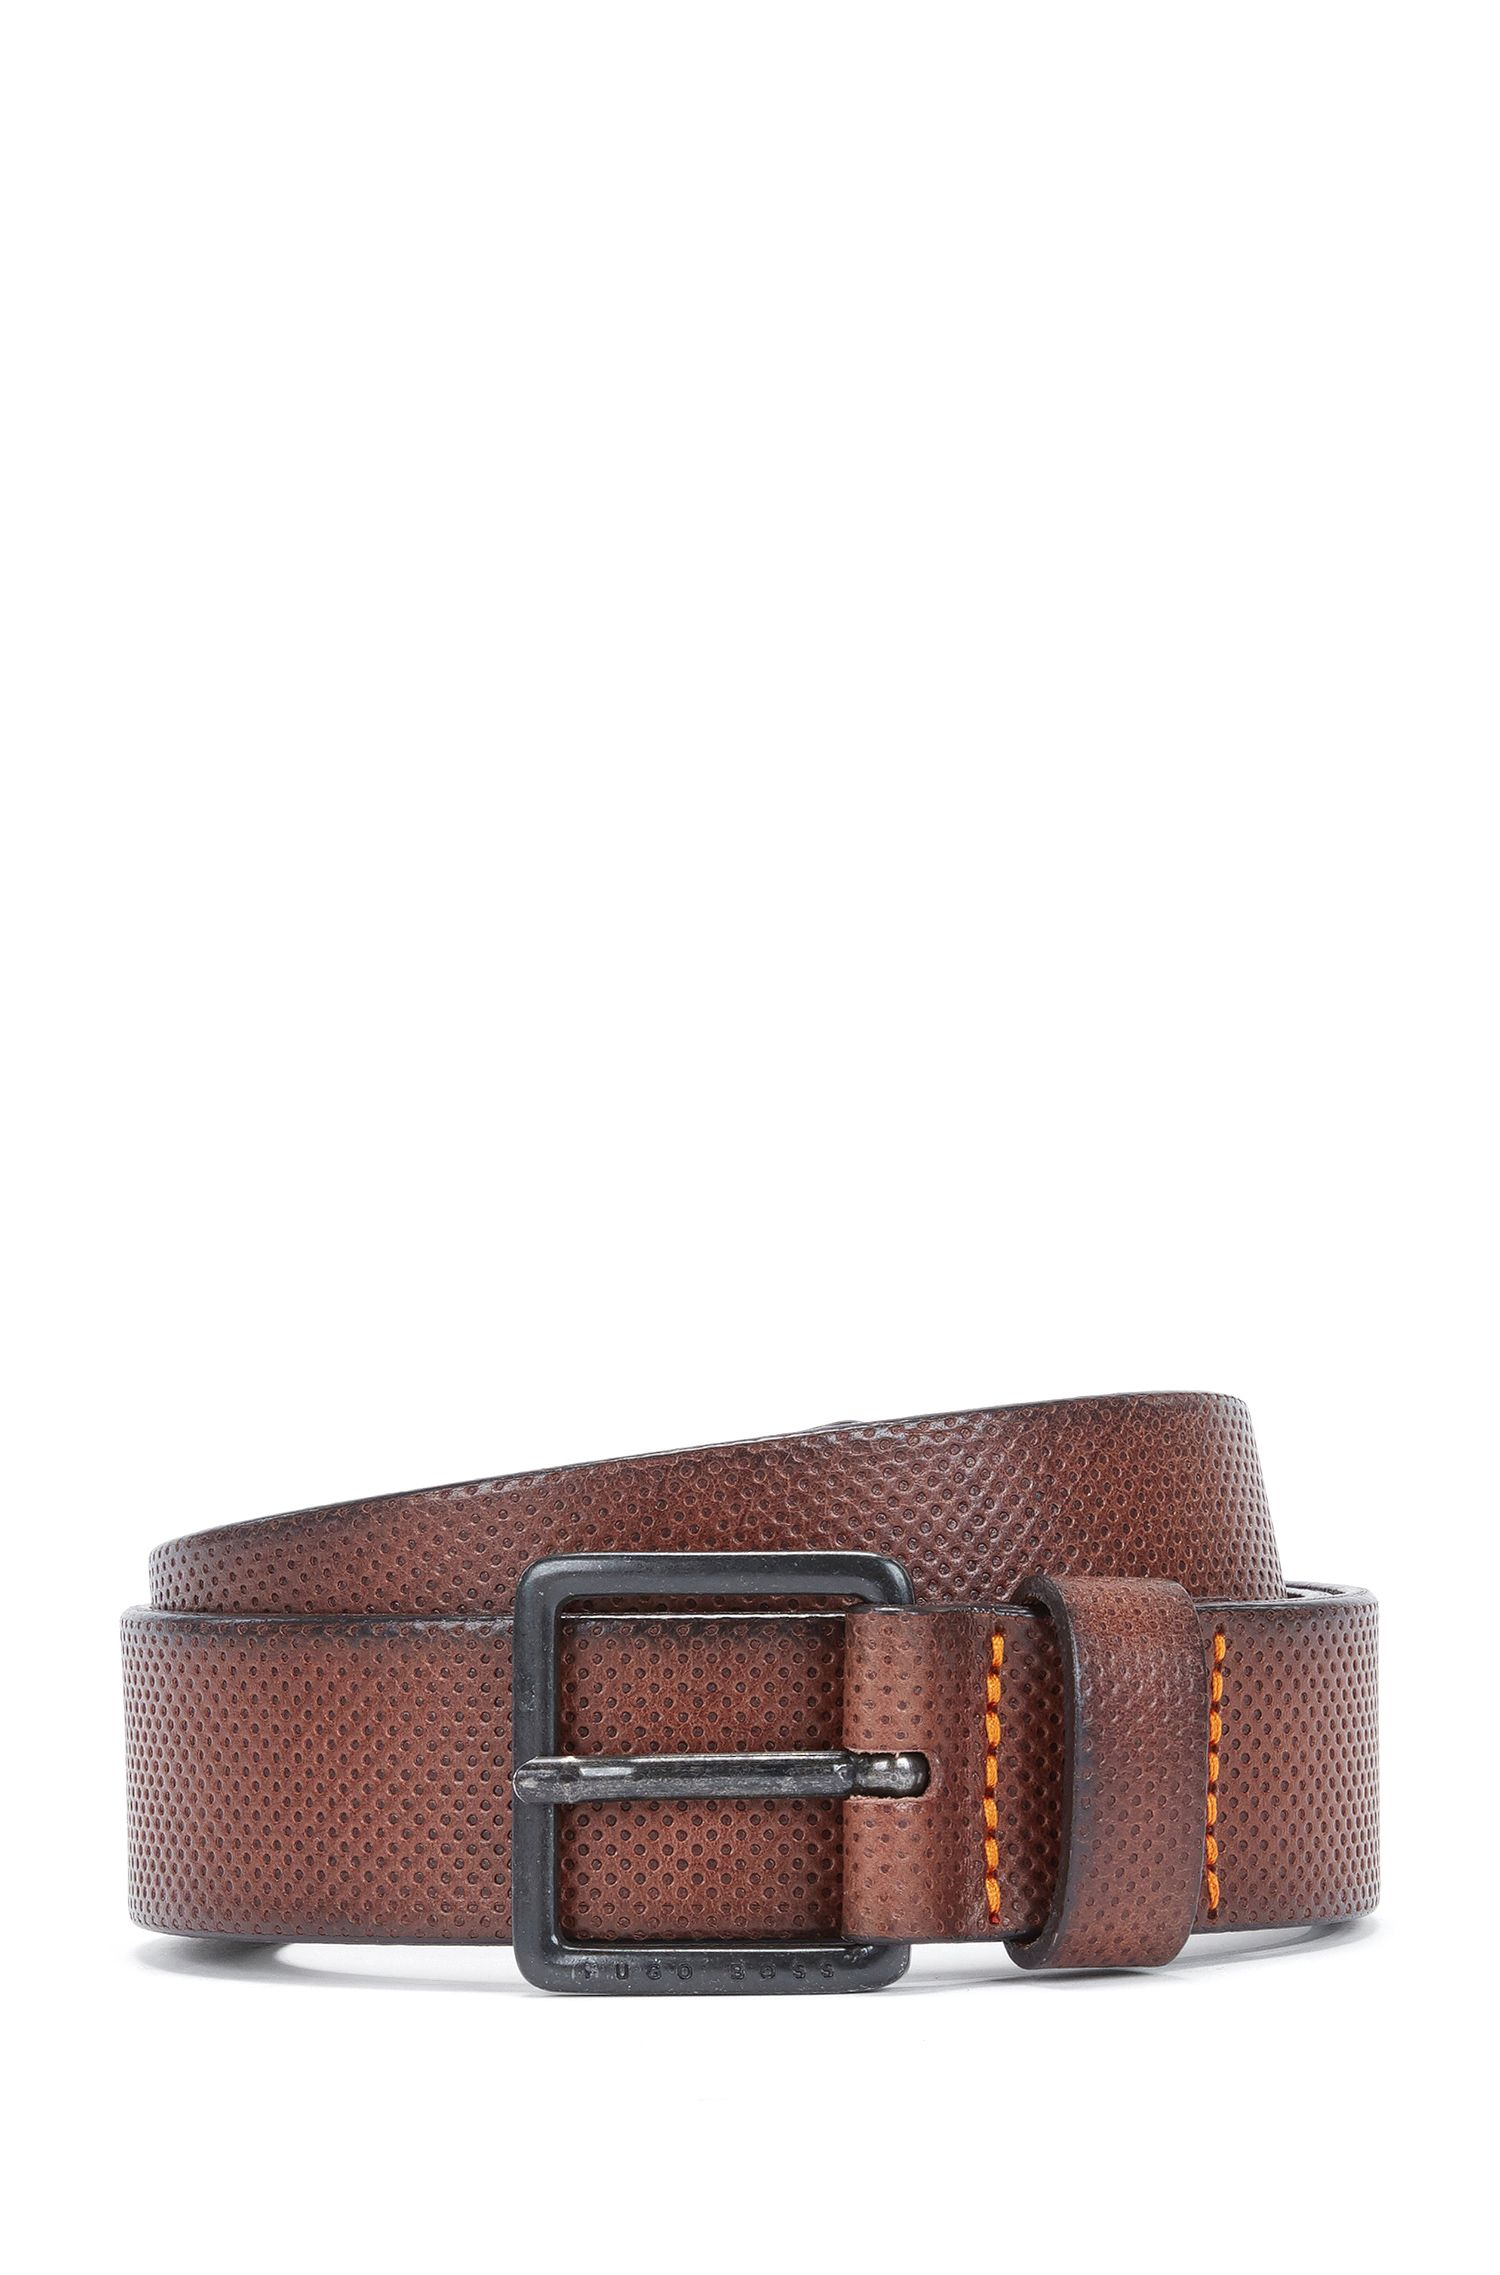 Embossed leather belt with branded metal buckle